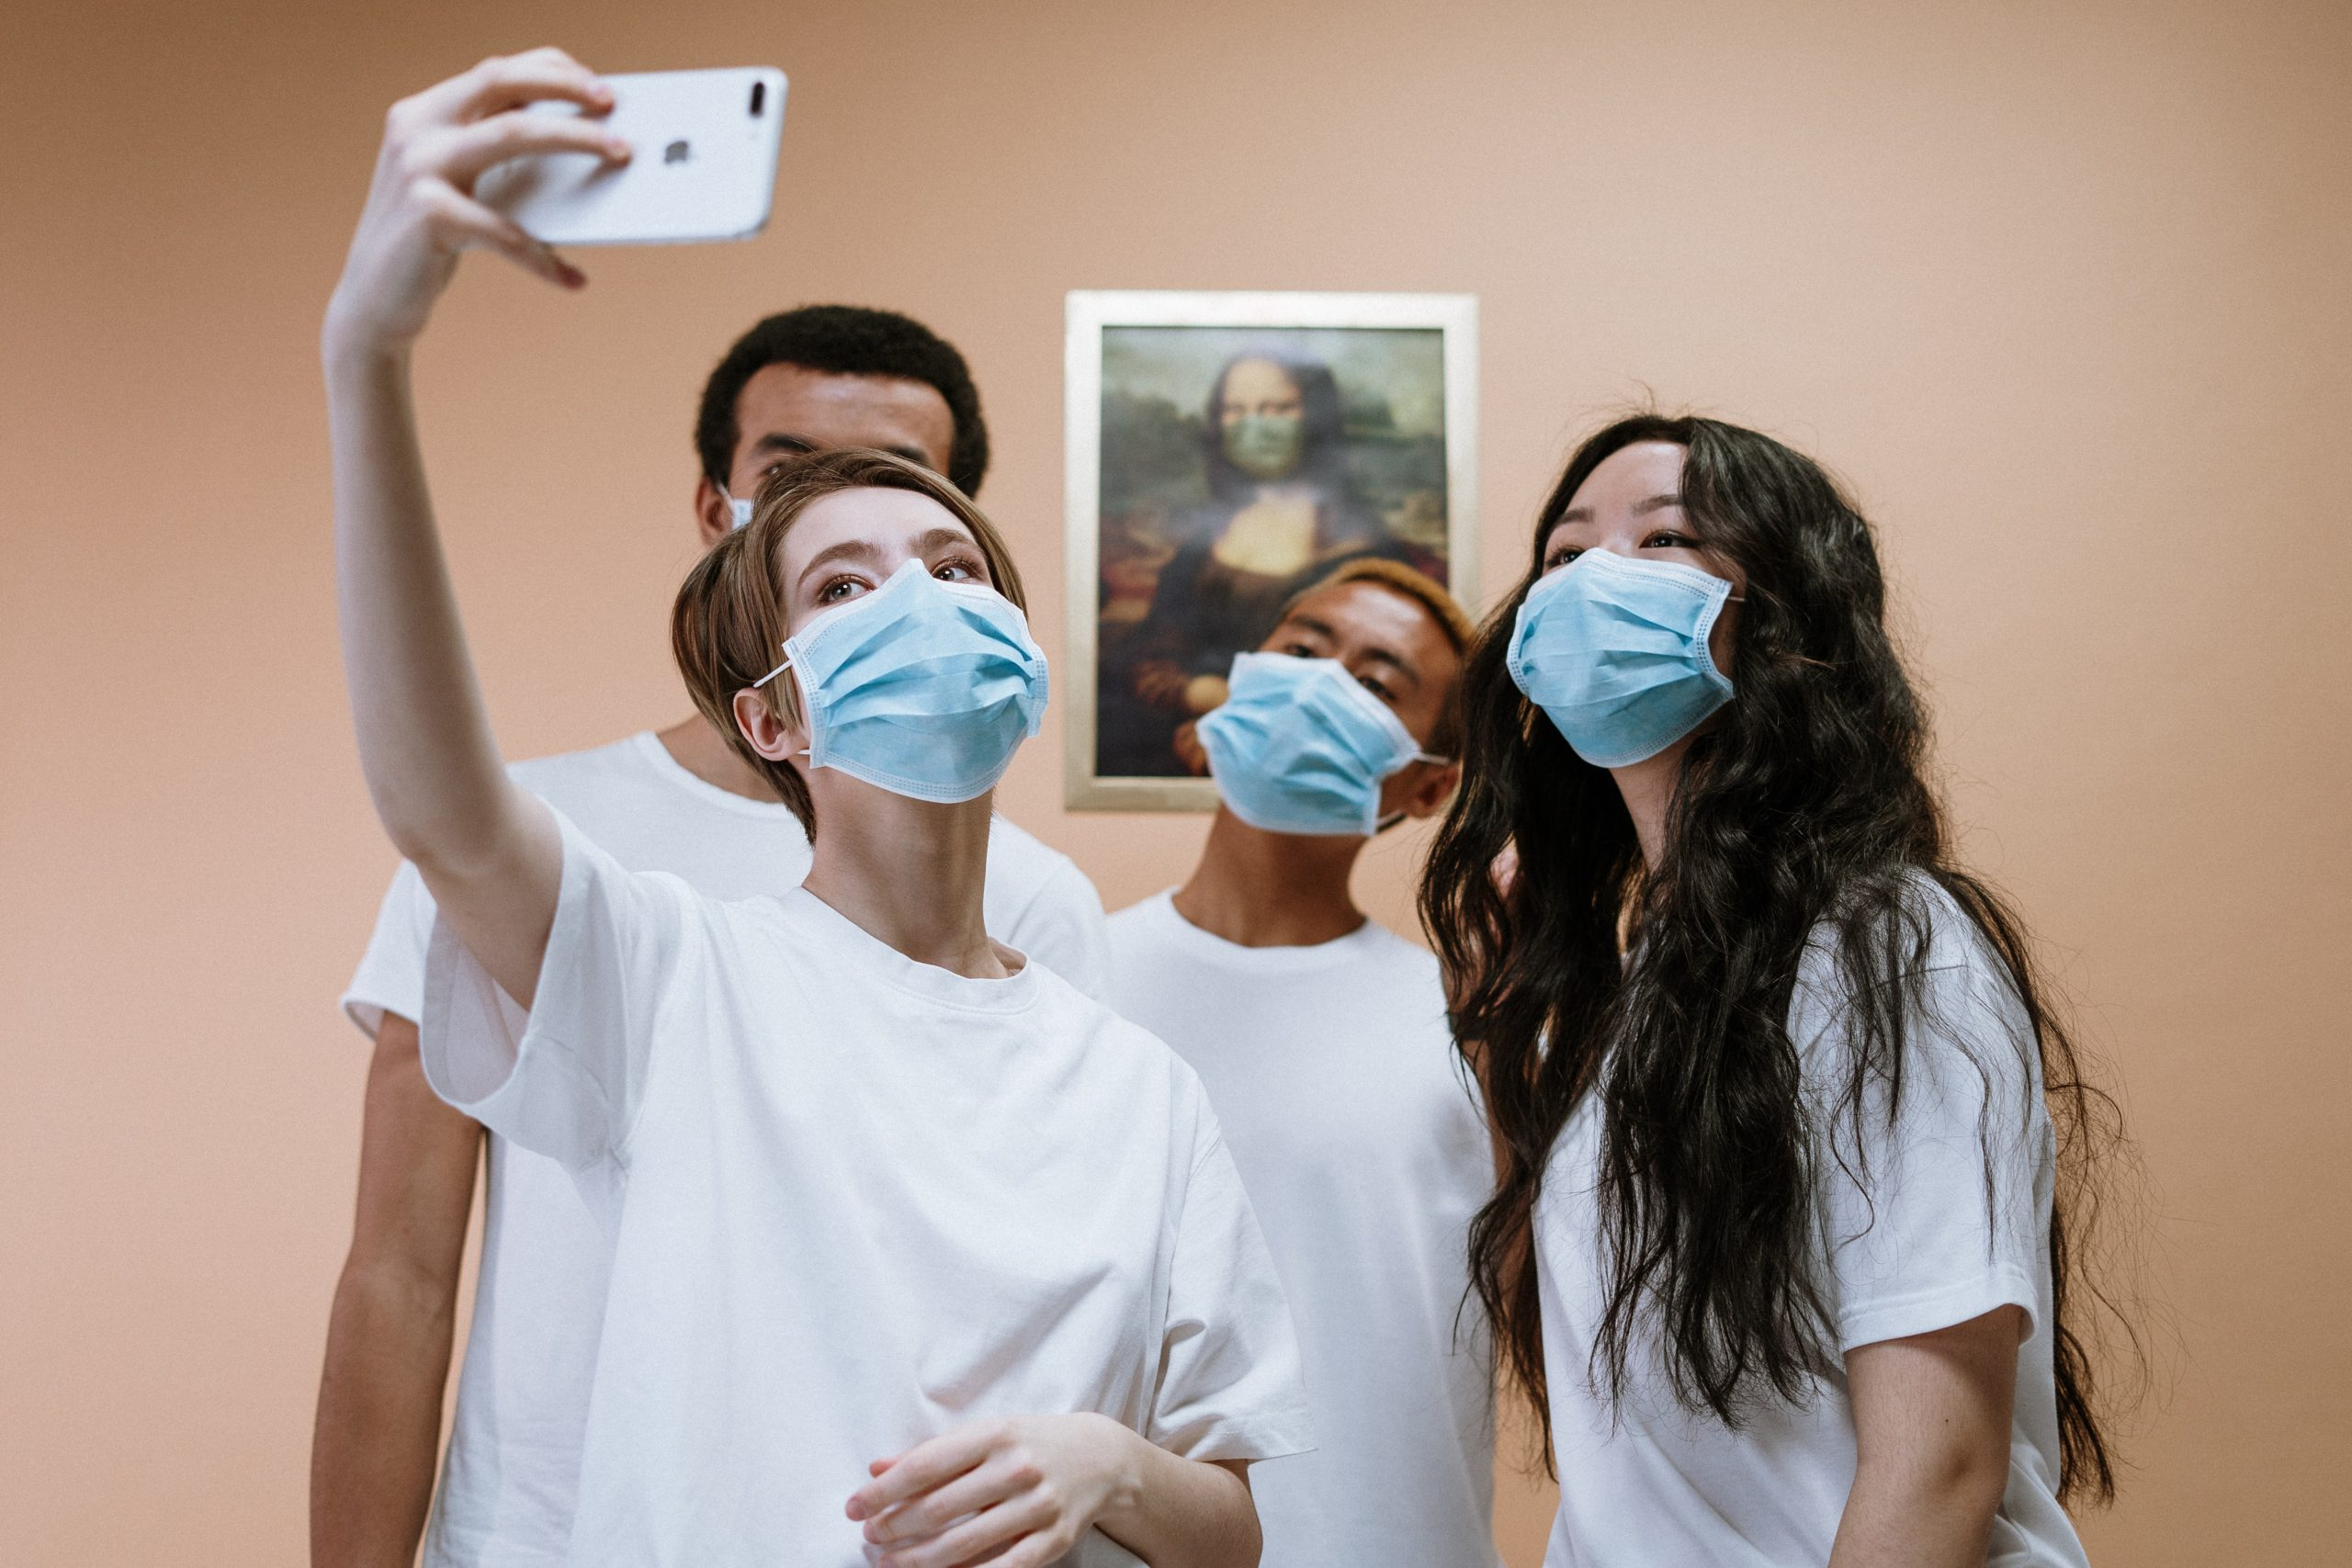 young-health-workers-taking-a-group-selfie-3957993